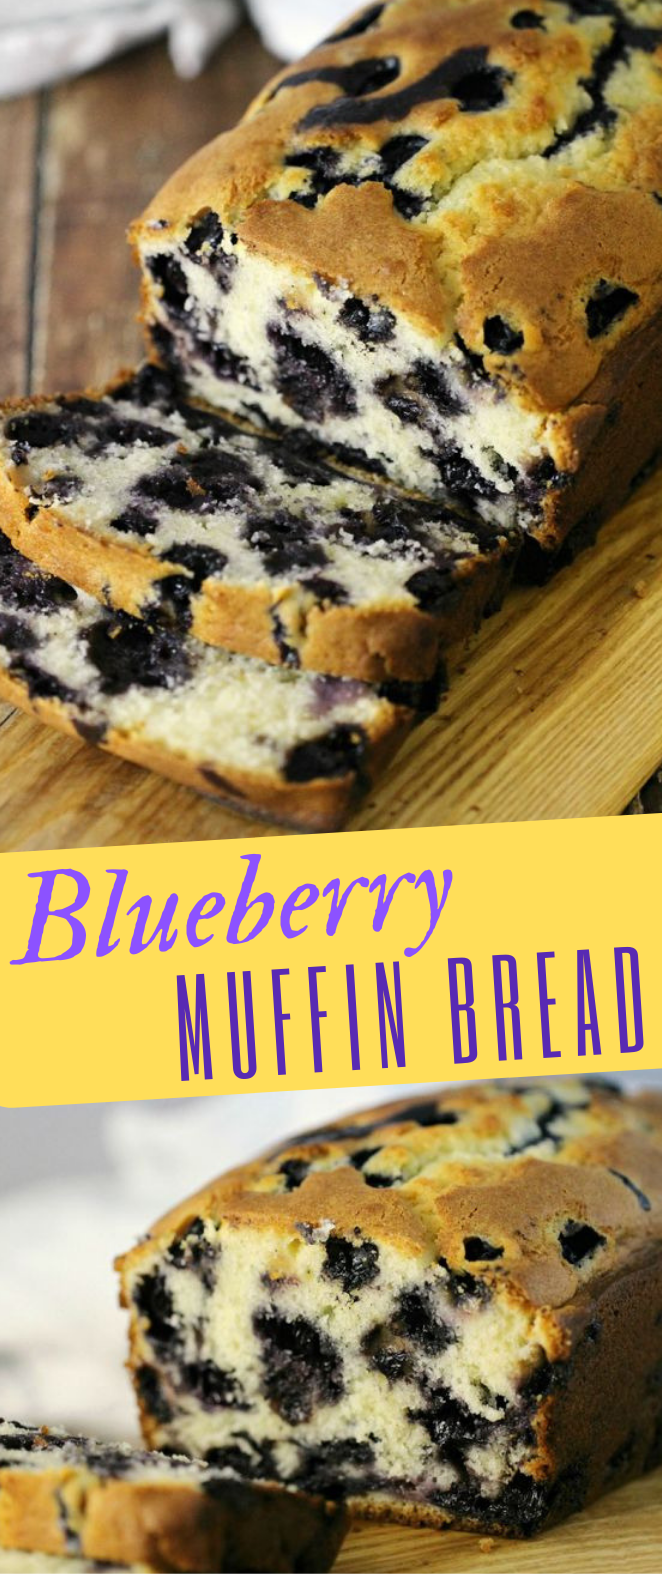 BLUEBERRY MUFFIN BREAD #cake #muffin